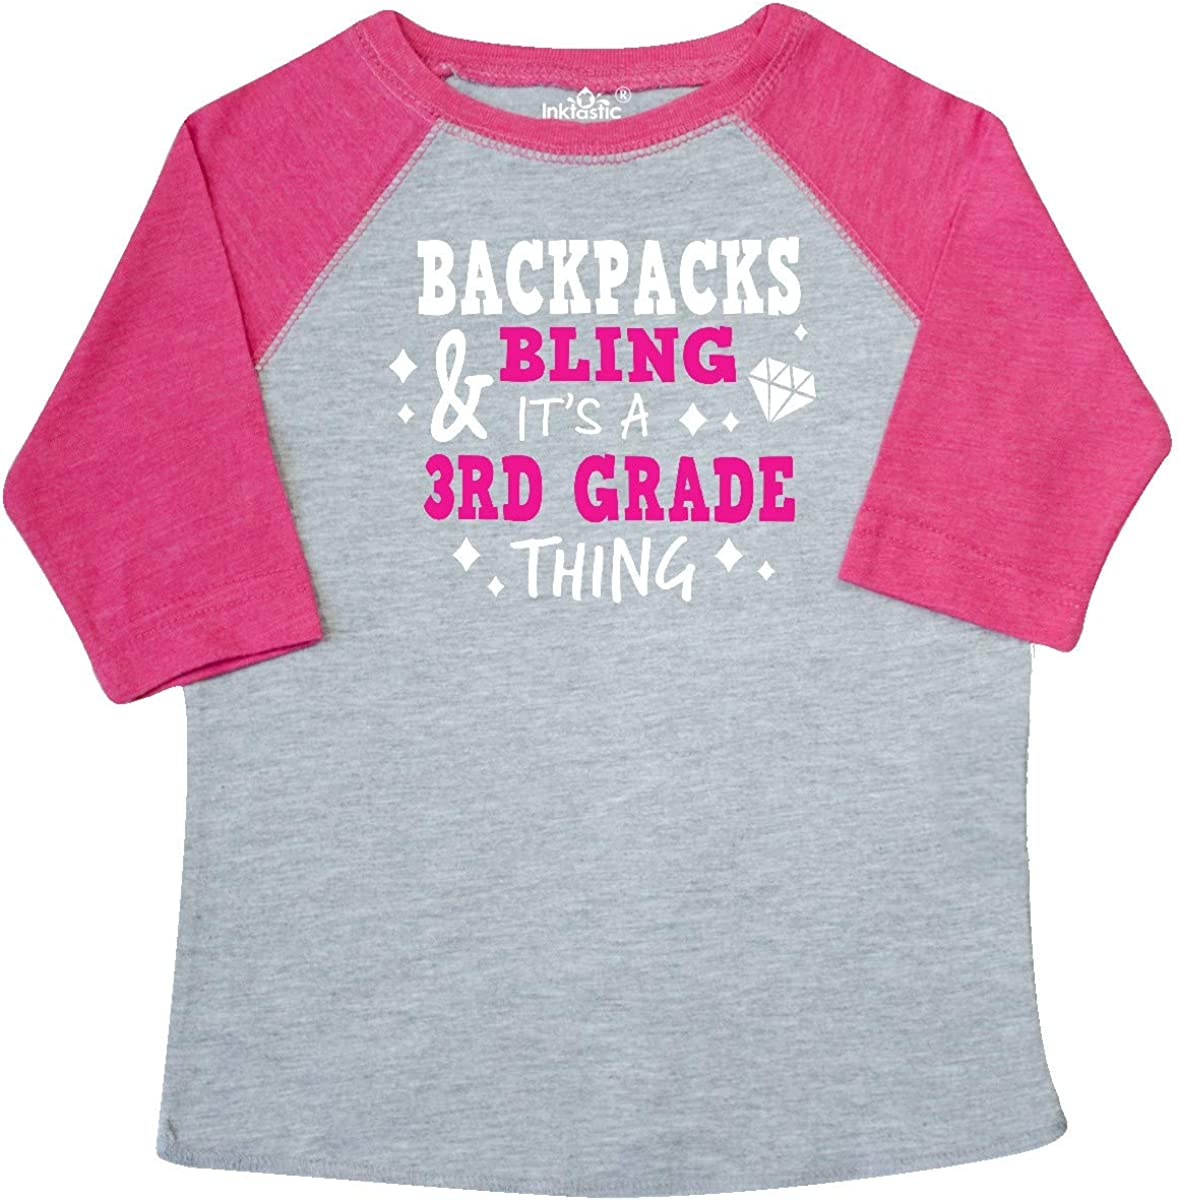 inktastic Backpacks and Bling Its a 3rd Grade Thing Toddler T-Shirt